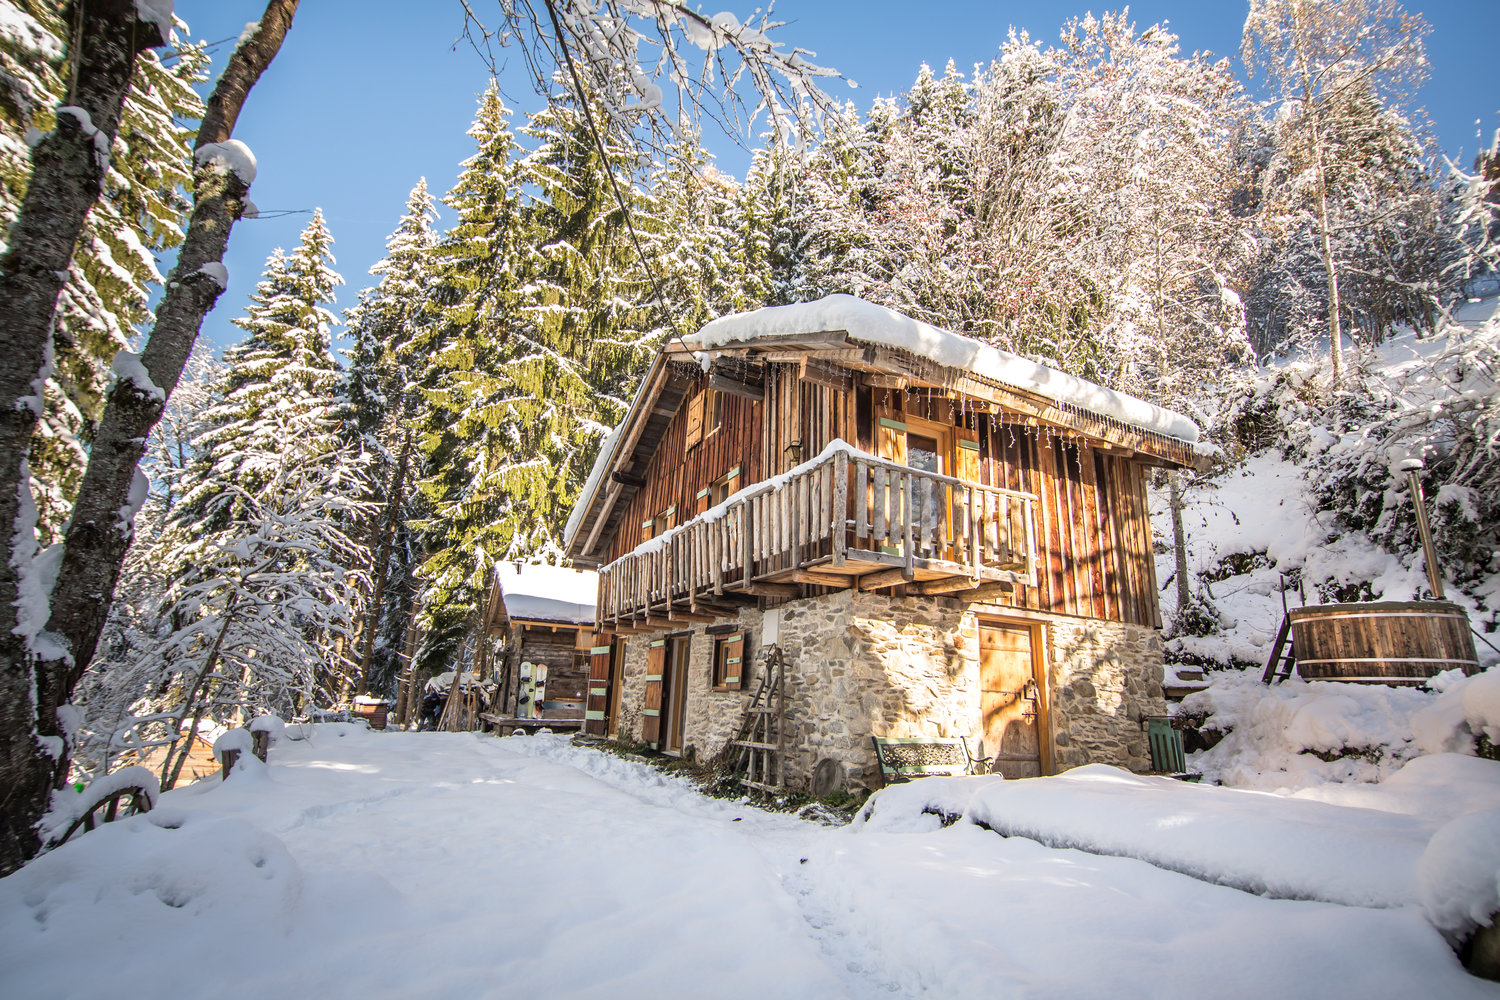 Le Refuge Megeve Architecte things to do at chalet f'net — chillderness